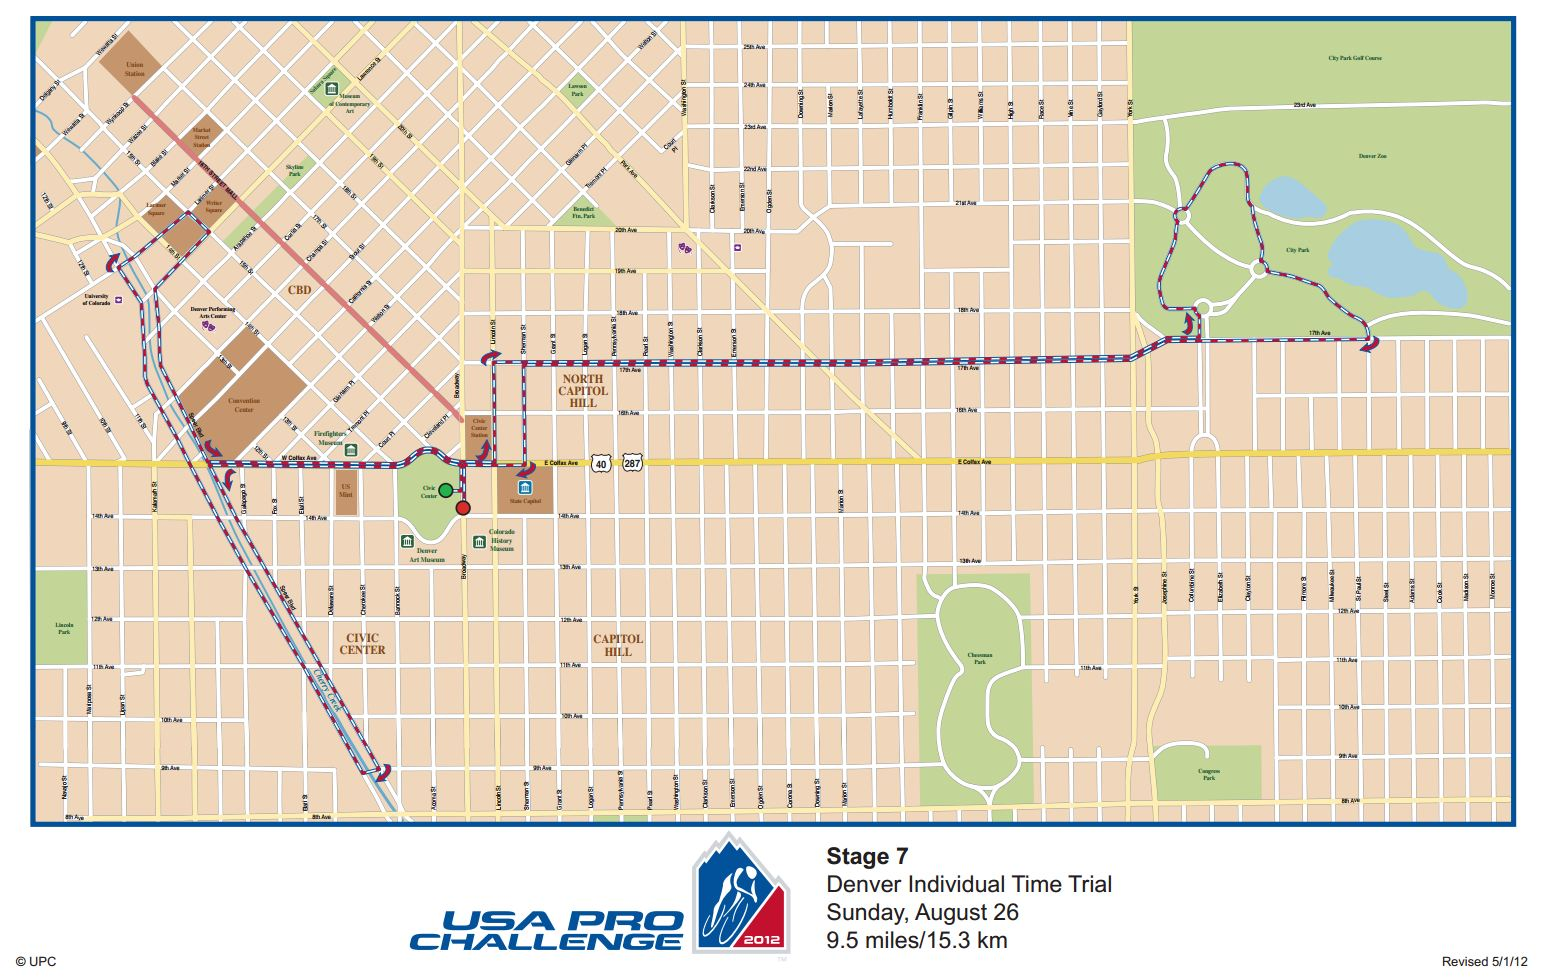 Stage 7 Denver Time Trial « coloradobikemaps